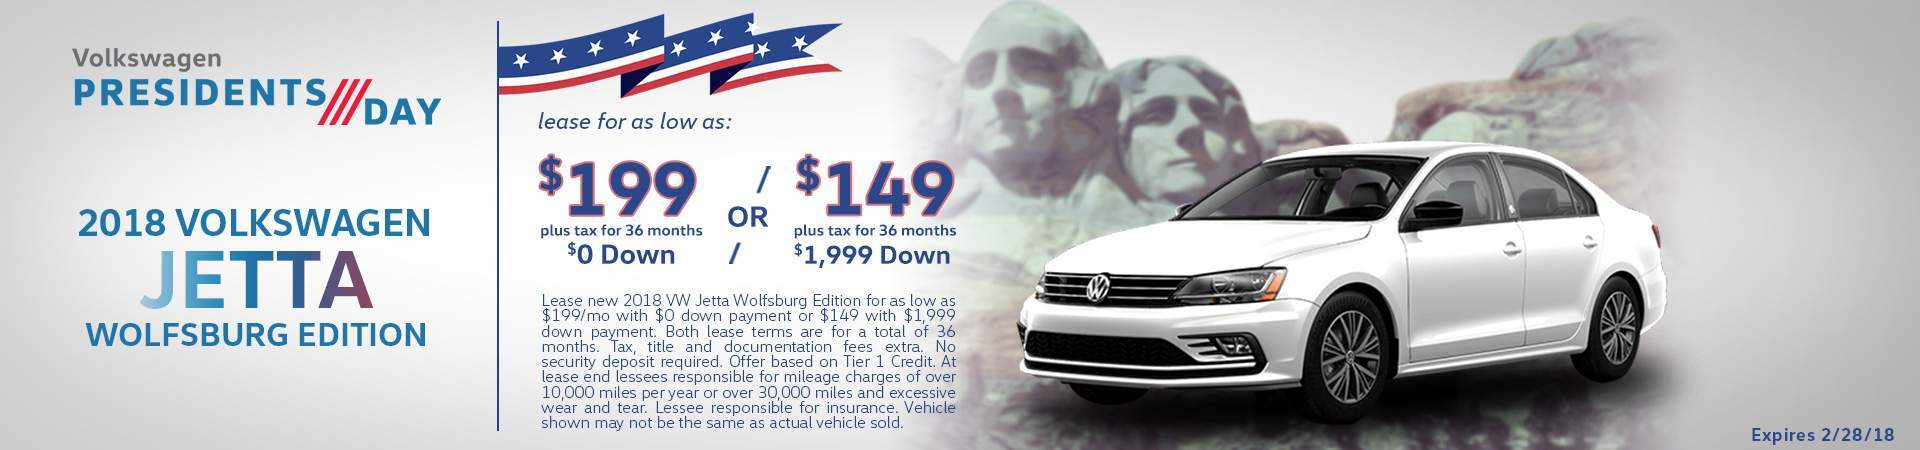 2018 Jetta Wolfsburg Edition lease specials